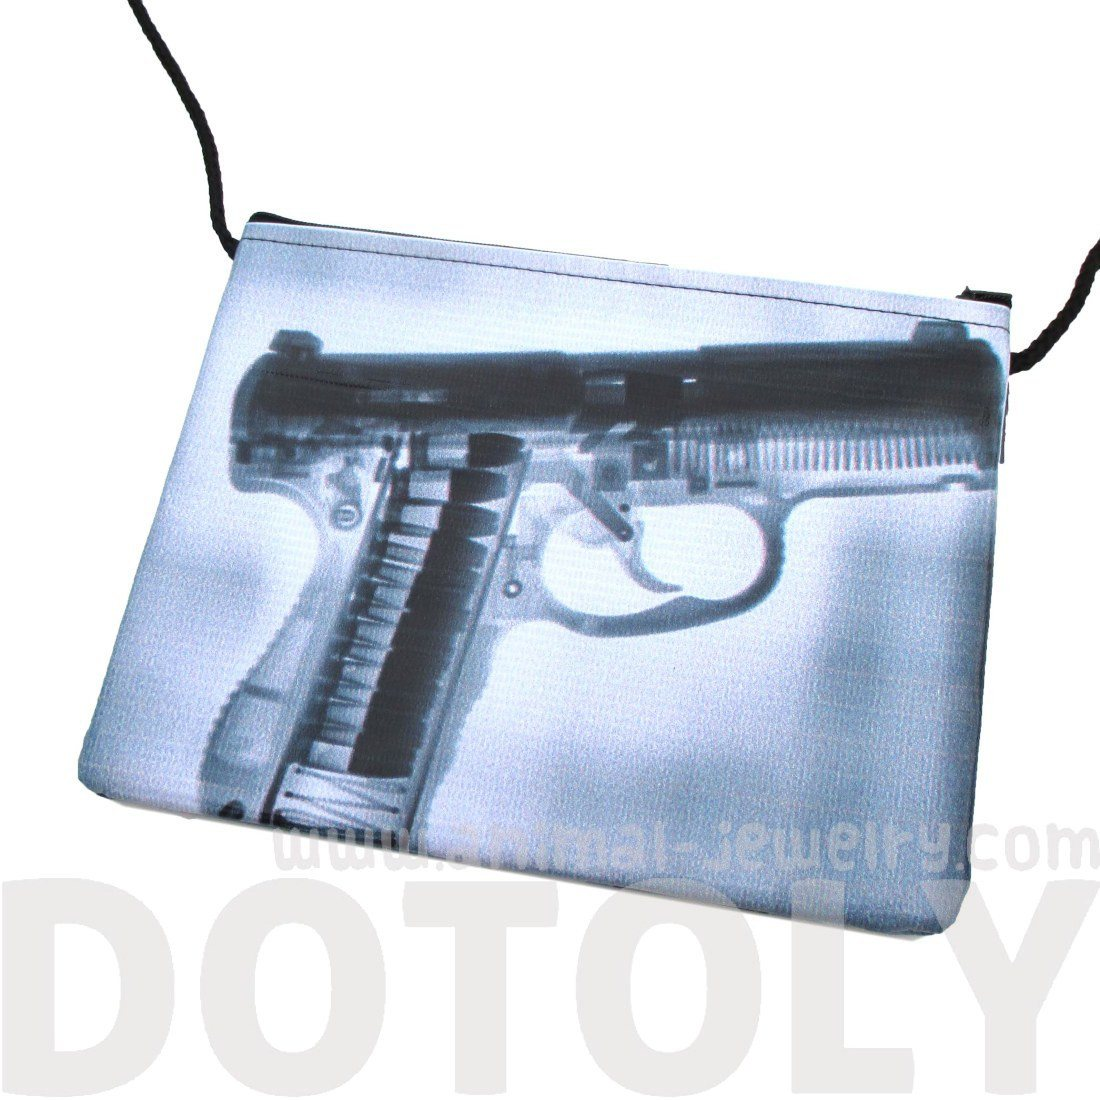 Fake X-Ray Loaded Revolver Gun Print Rectangular Shaped Cross Body Bag